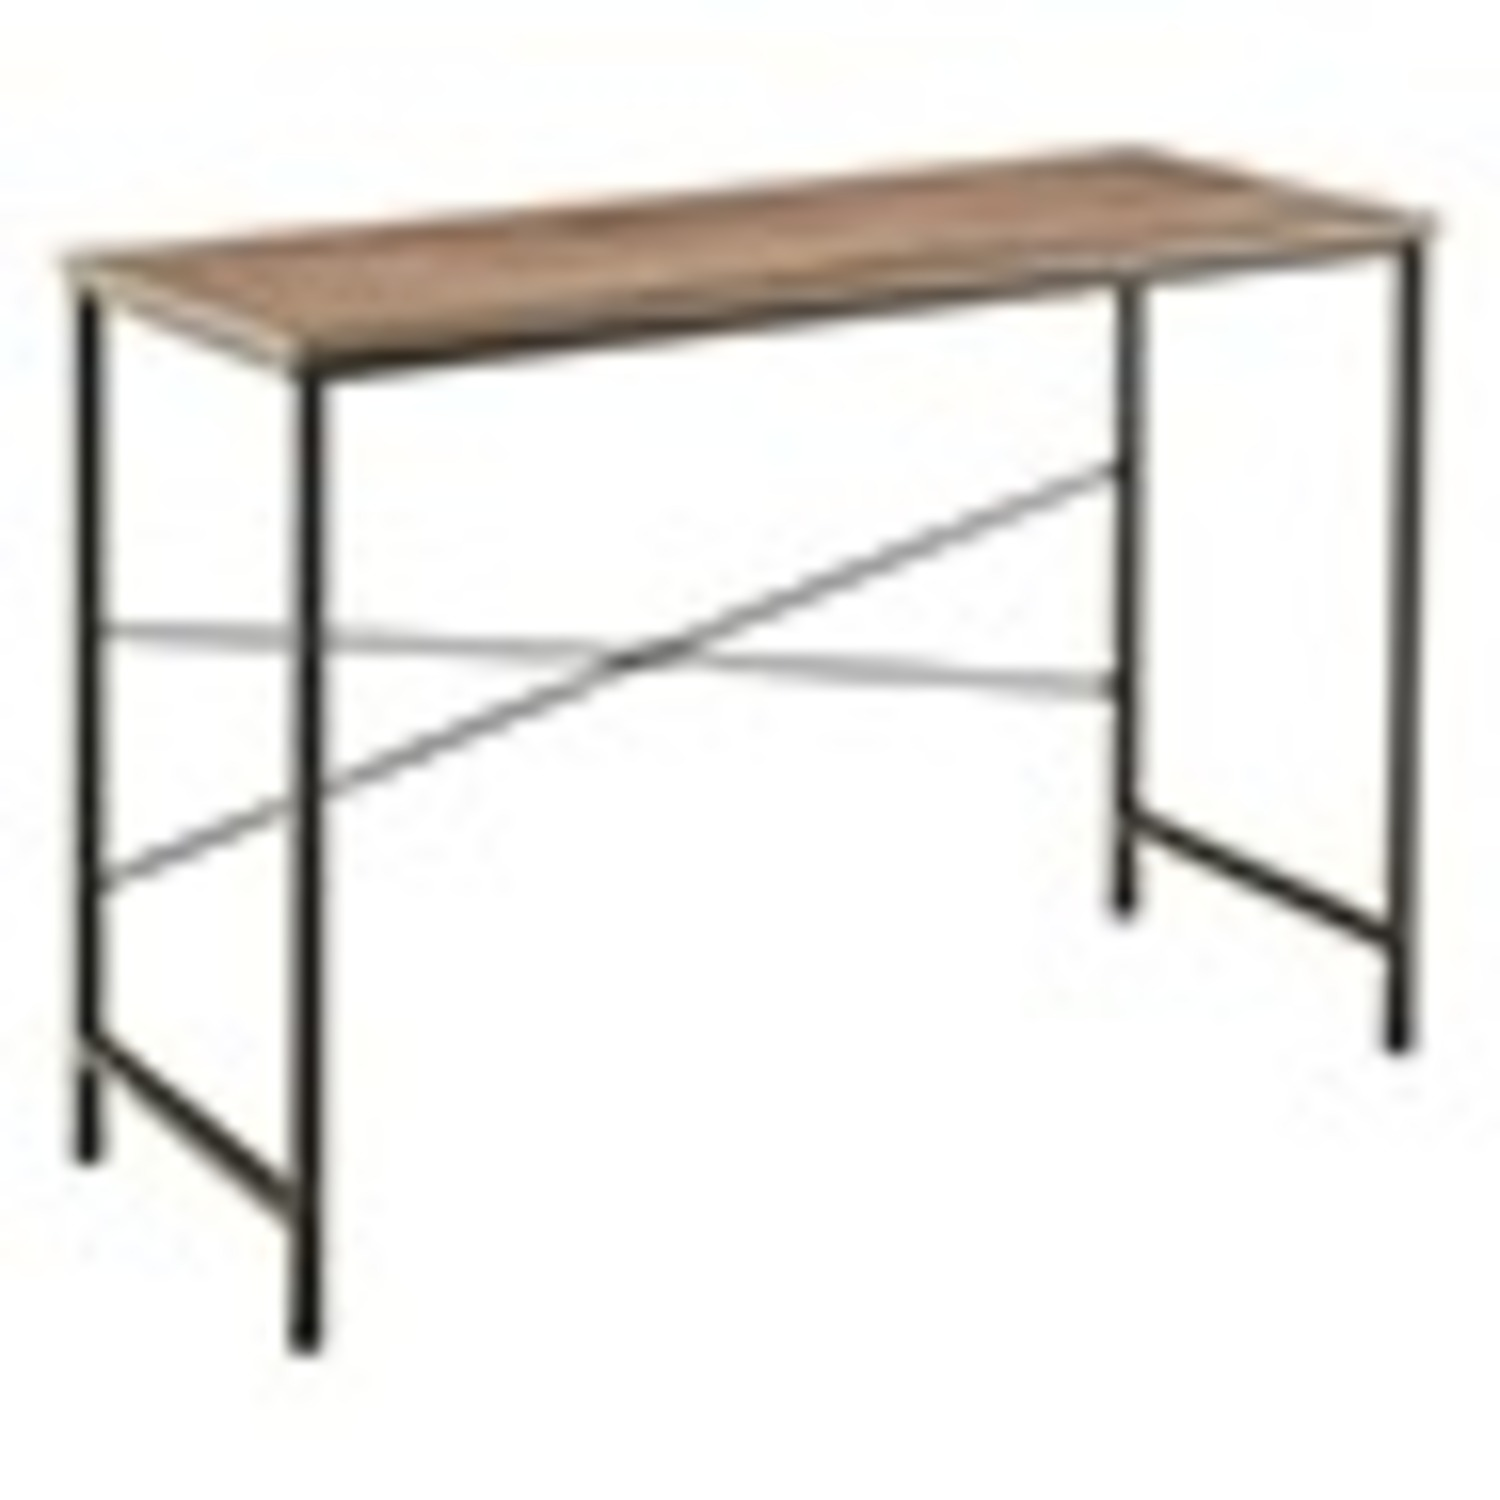 Rubbermaid Modern Console Table - image-3